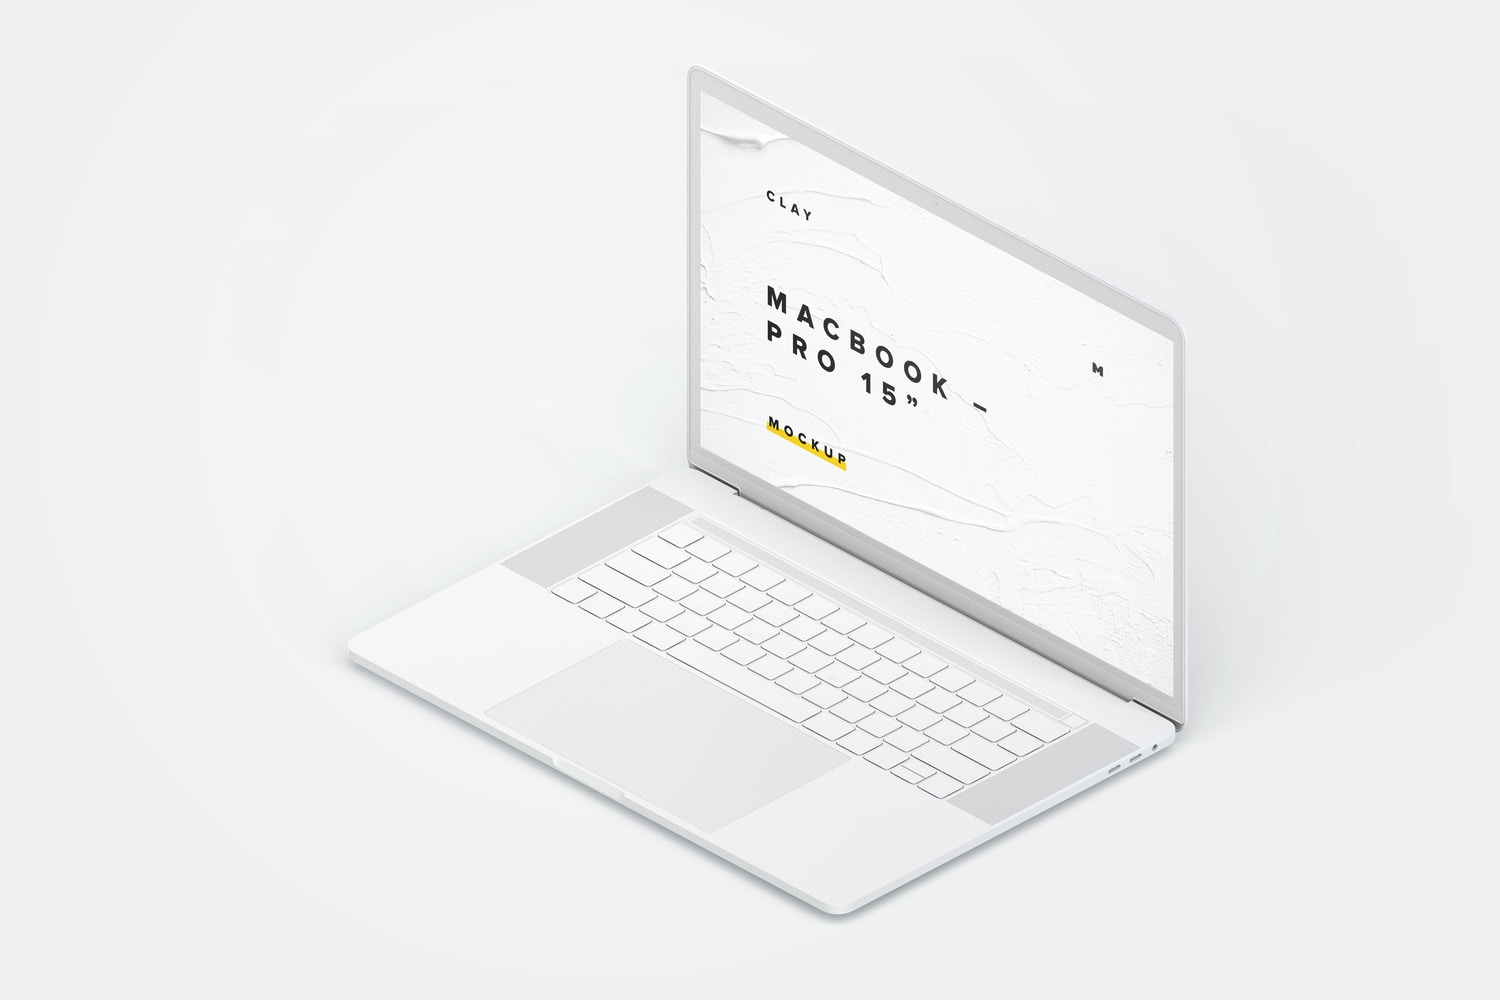 """Clay MacBook Pro 15"""" with Touch Bar, Right Isometric View Mockup"""